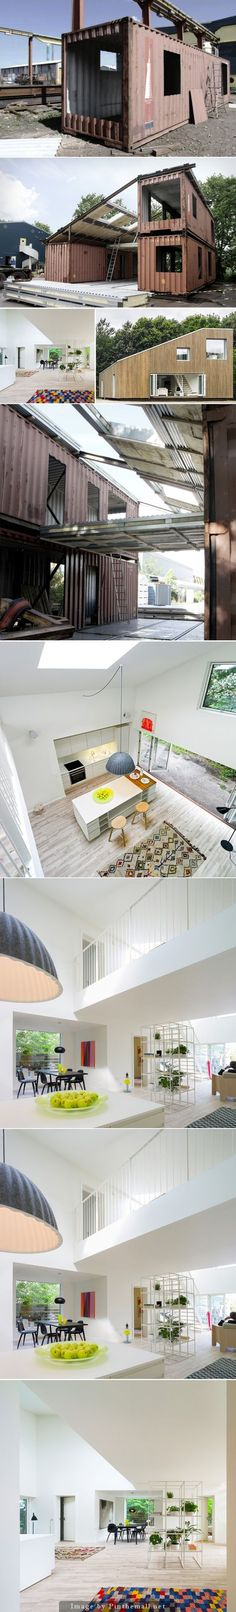 20-Foot Shipping Container Floor Plan Brainstorm | Tiny House Living ...